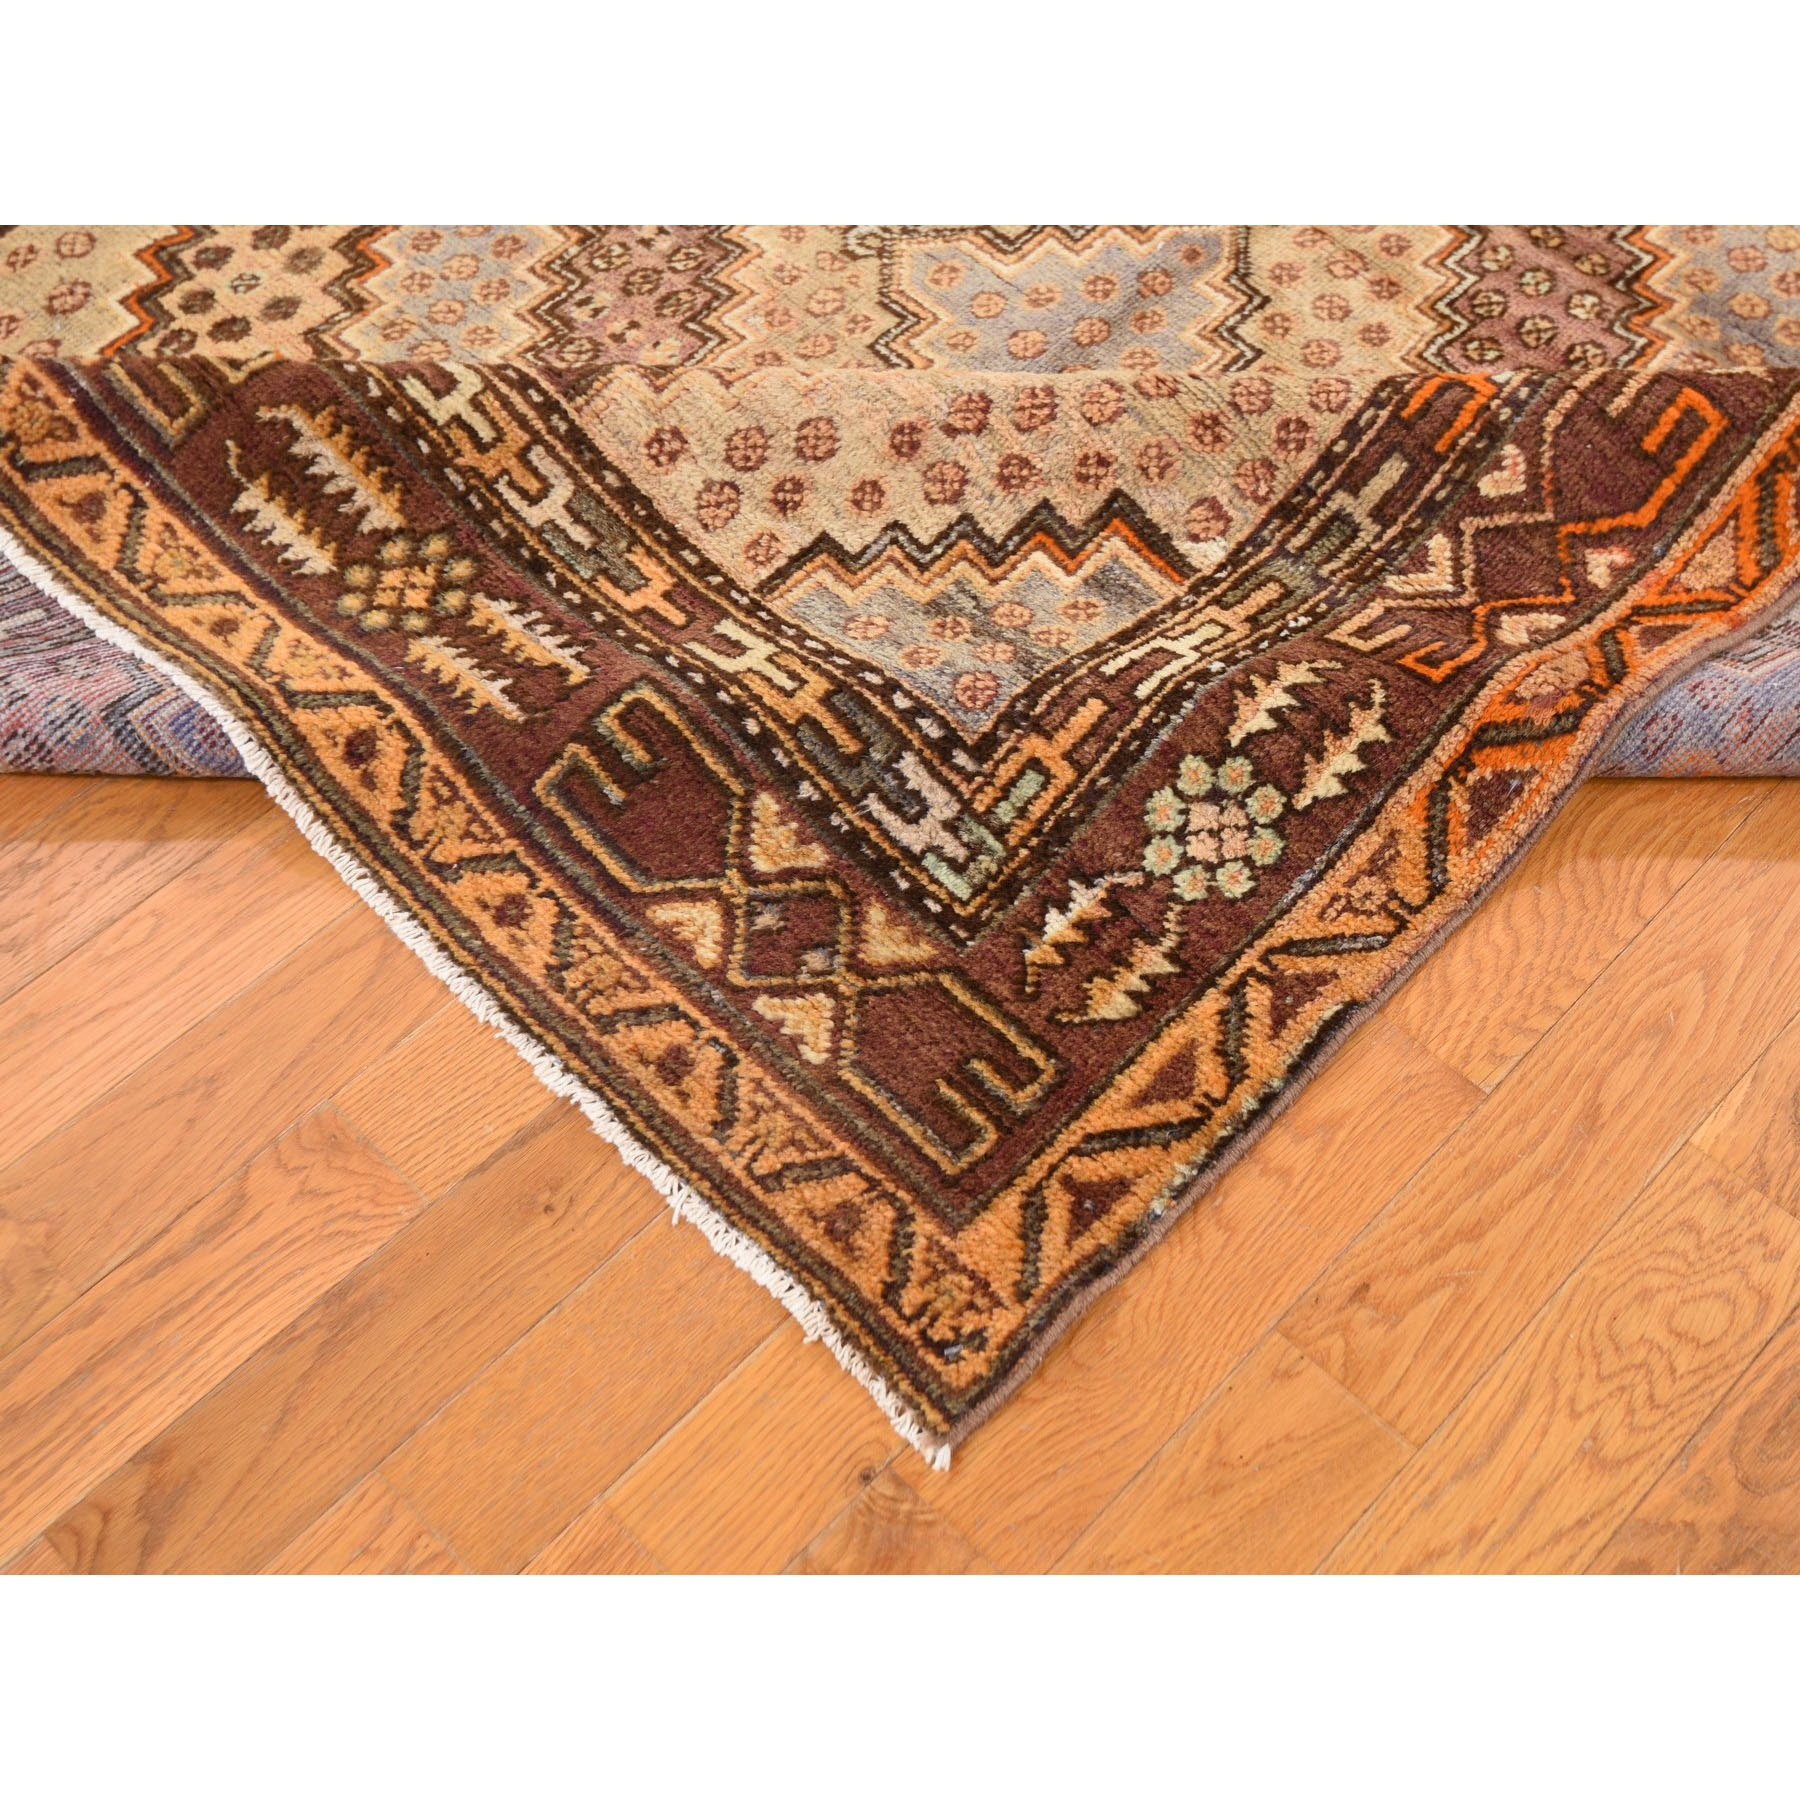 5-5 x10-8  Gallery Size Antique Khotan Full Pile Hand Knotted Oriental Rug